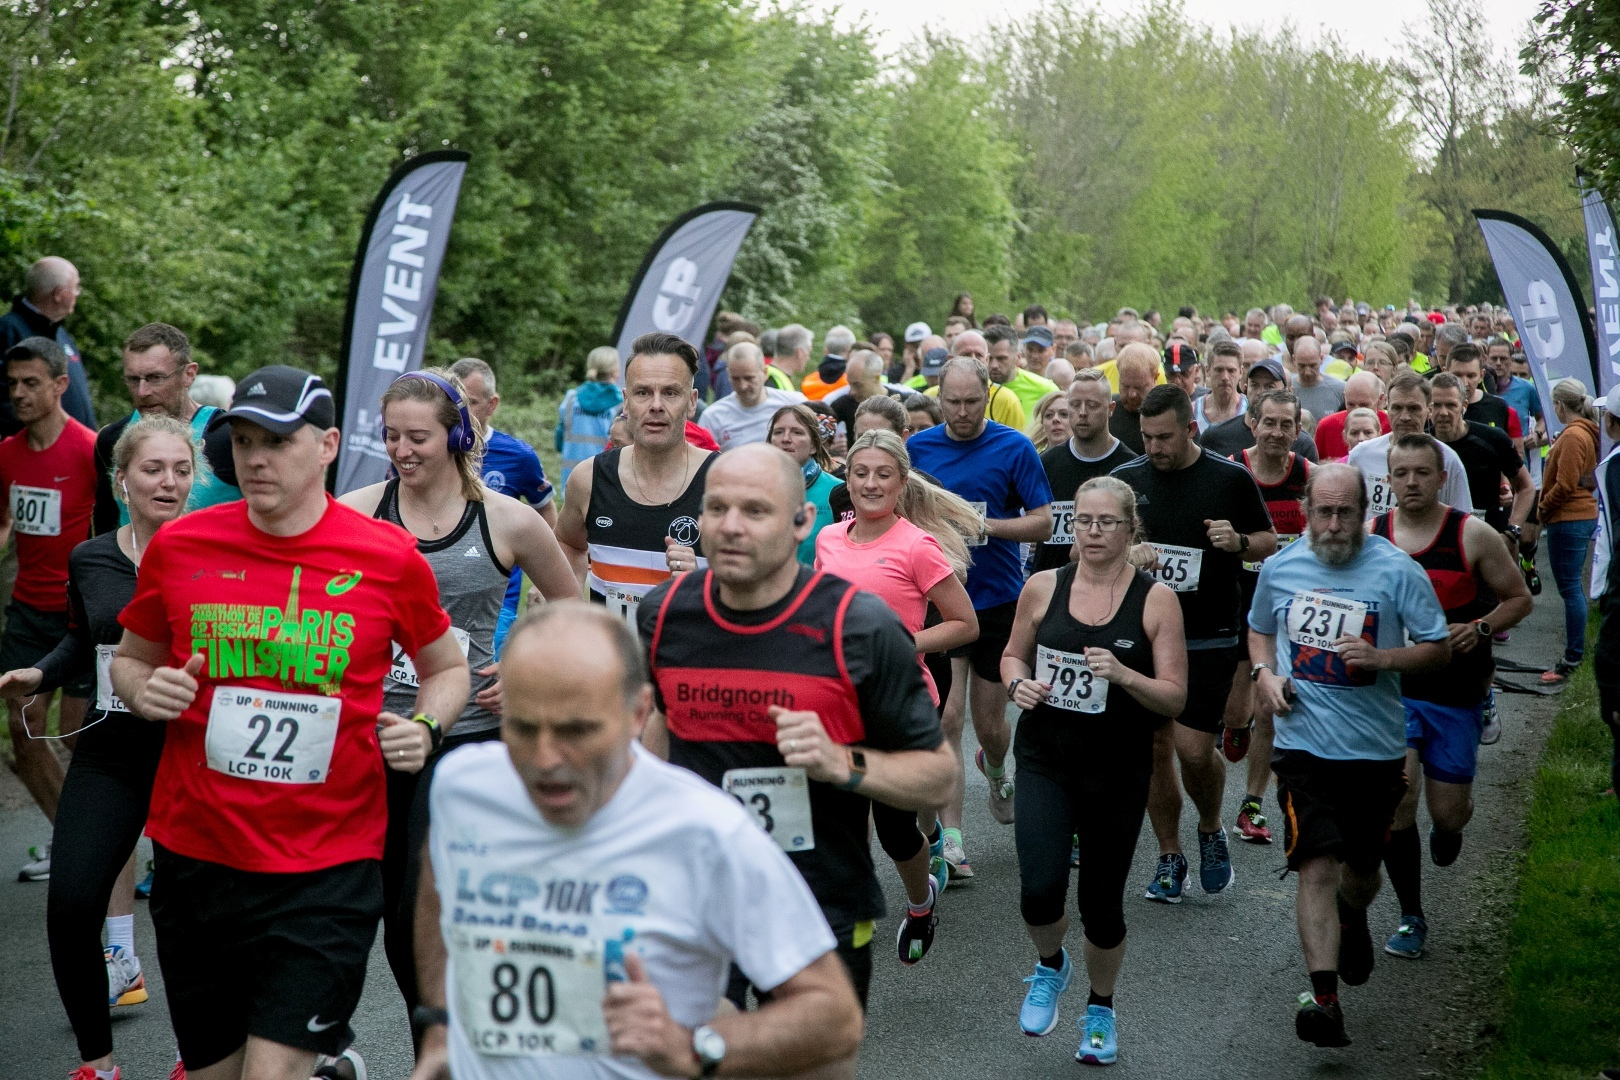 Runners take on the LCP 10k race